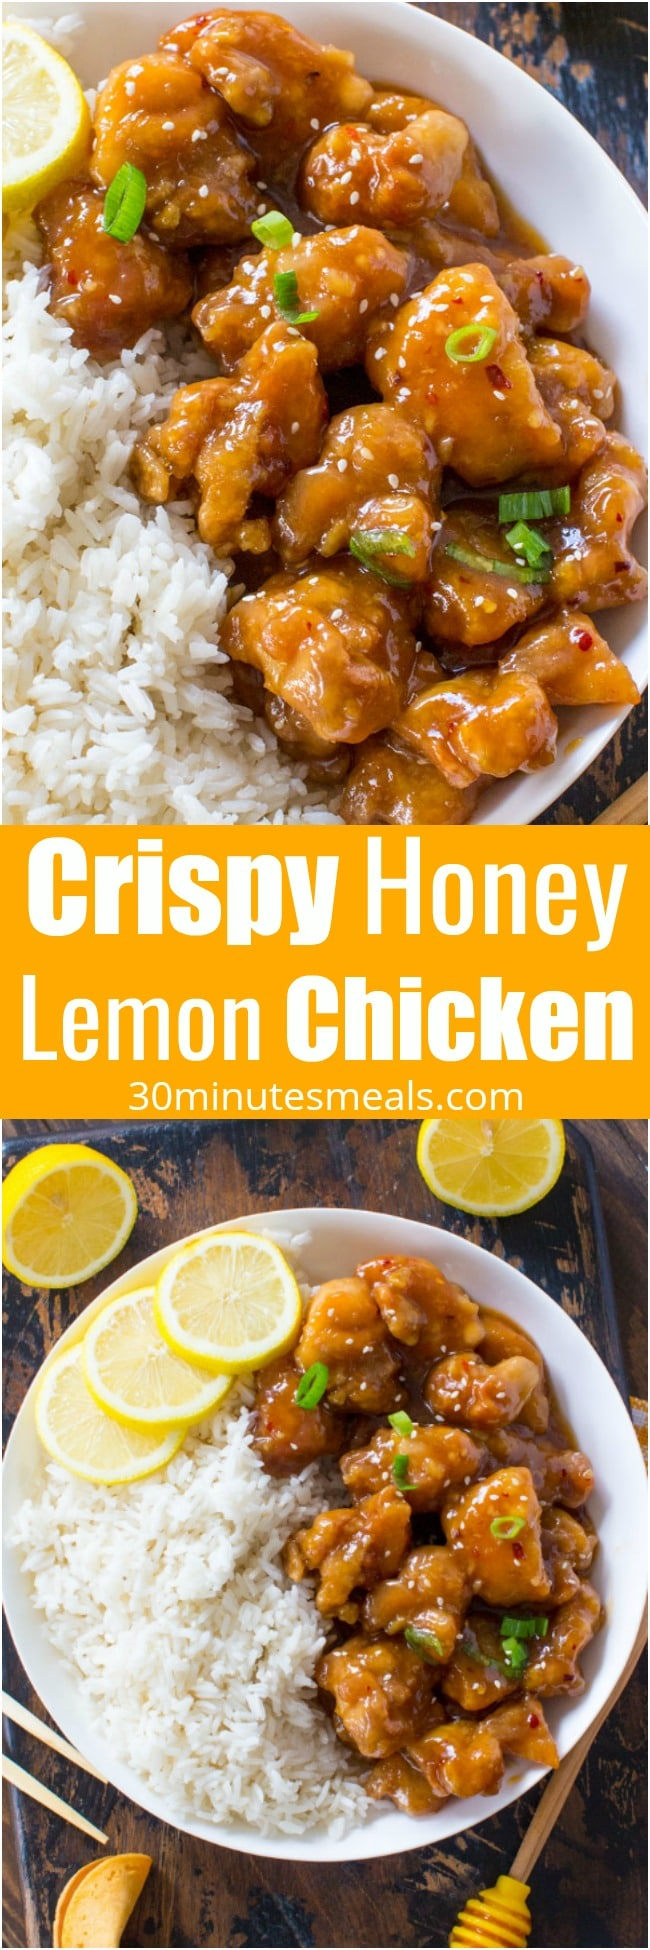 Crispy honey lemon chicken 30minutesmeals chinese crispy honey lemon chicken is a restaurant quality meal made easy at home in forumfinder Images